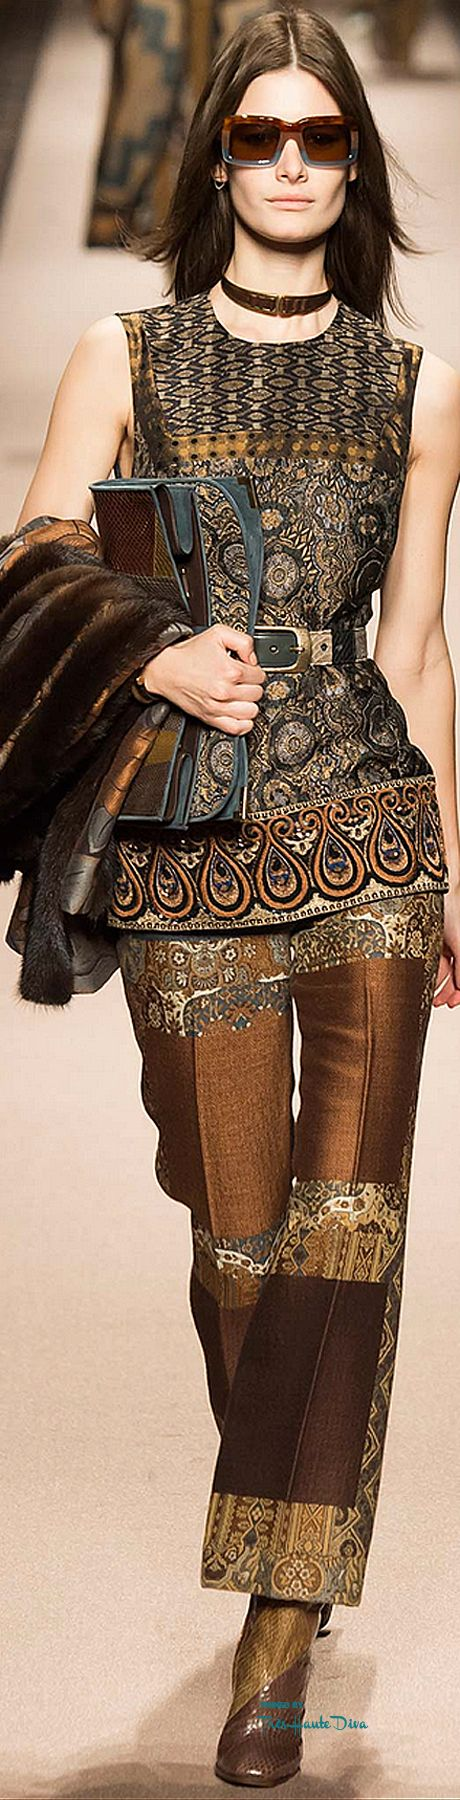 #MFW Etro Fall 2015 RTW ♔THD♔ | Not sure about the pants but I love the top! | fall fashion 2015 | www.endorajewellery.etsy.com